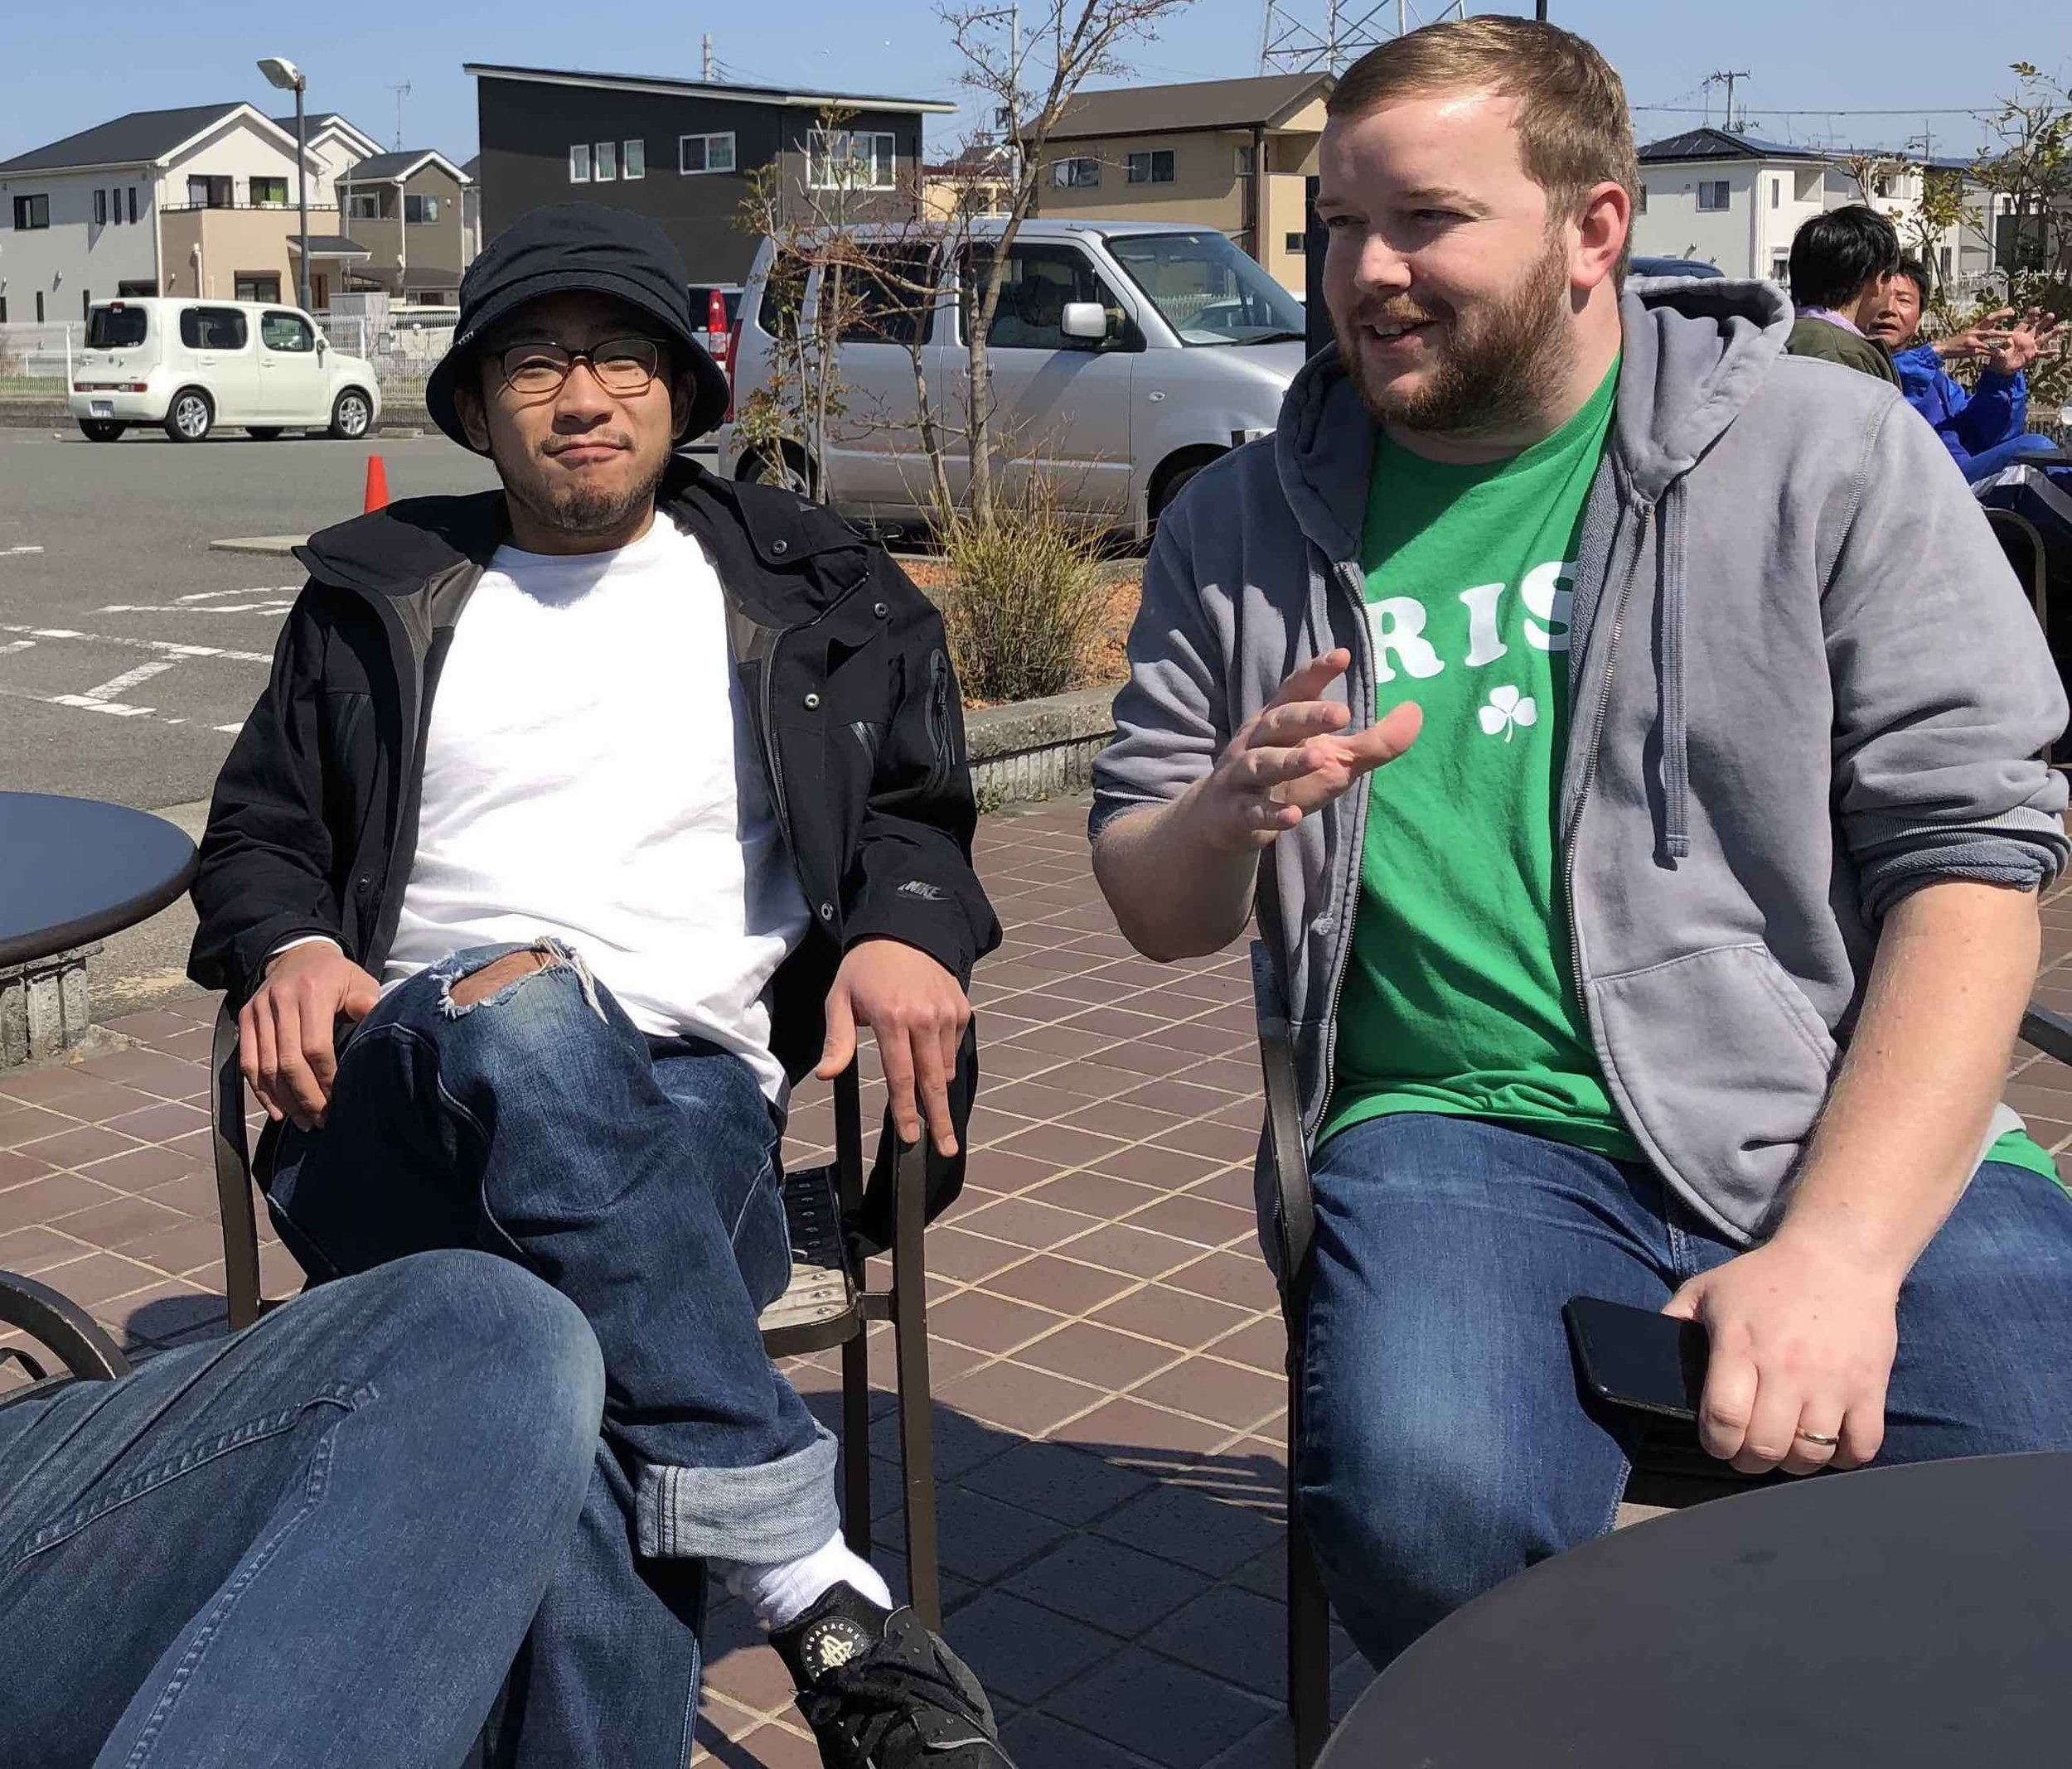 Here I am with a new friend, Takato. He lives near our new home.We have plans to grab many cups of coffee together. Pray for his salvation.